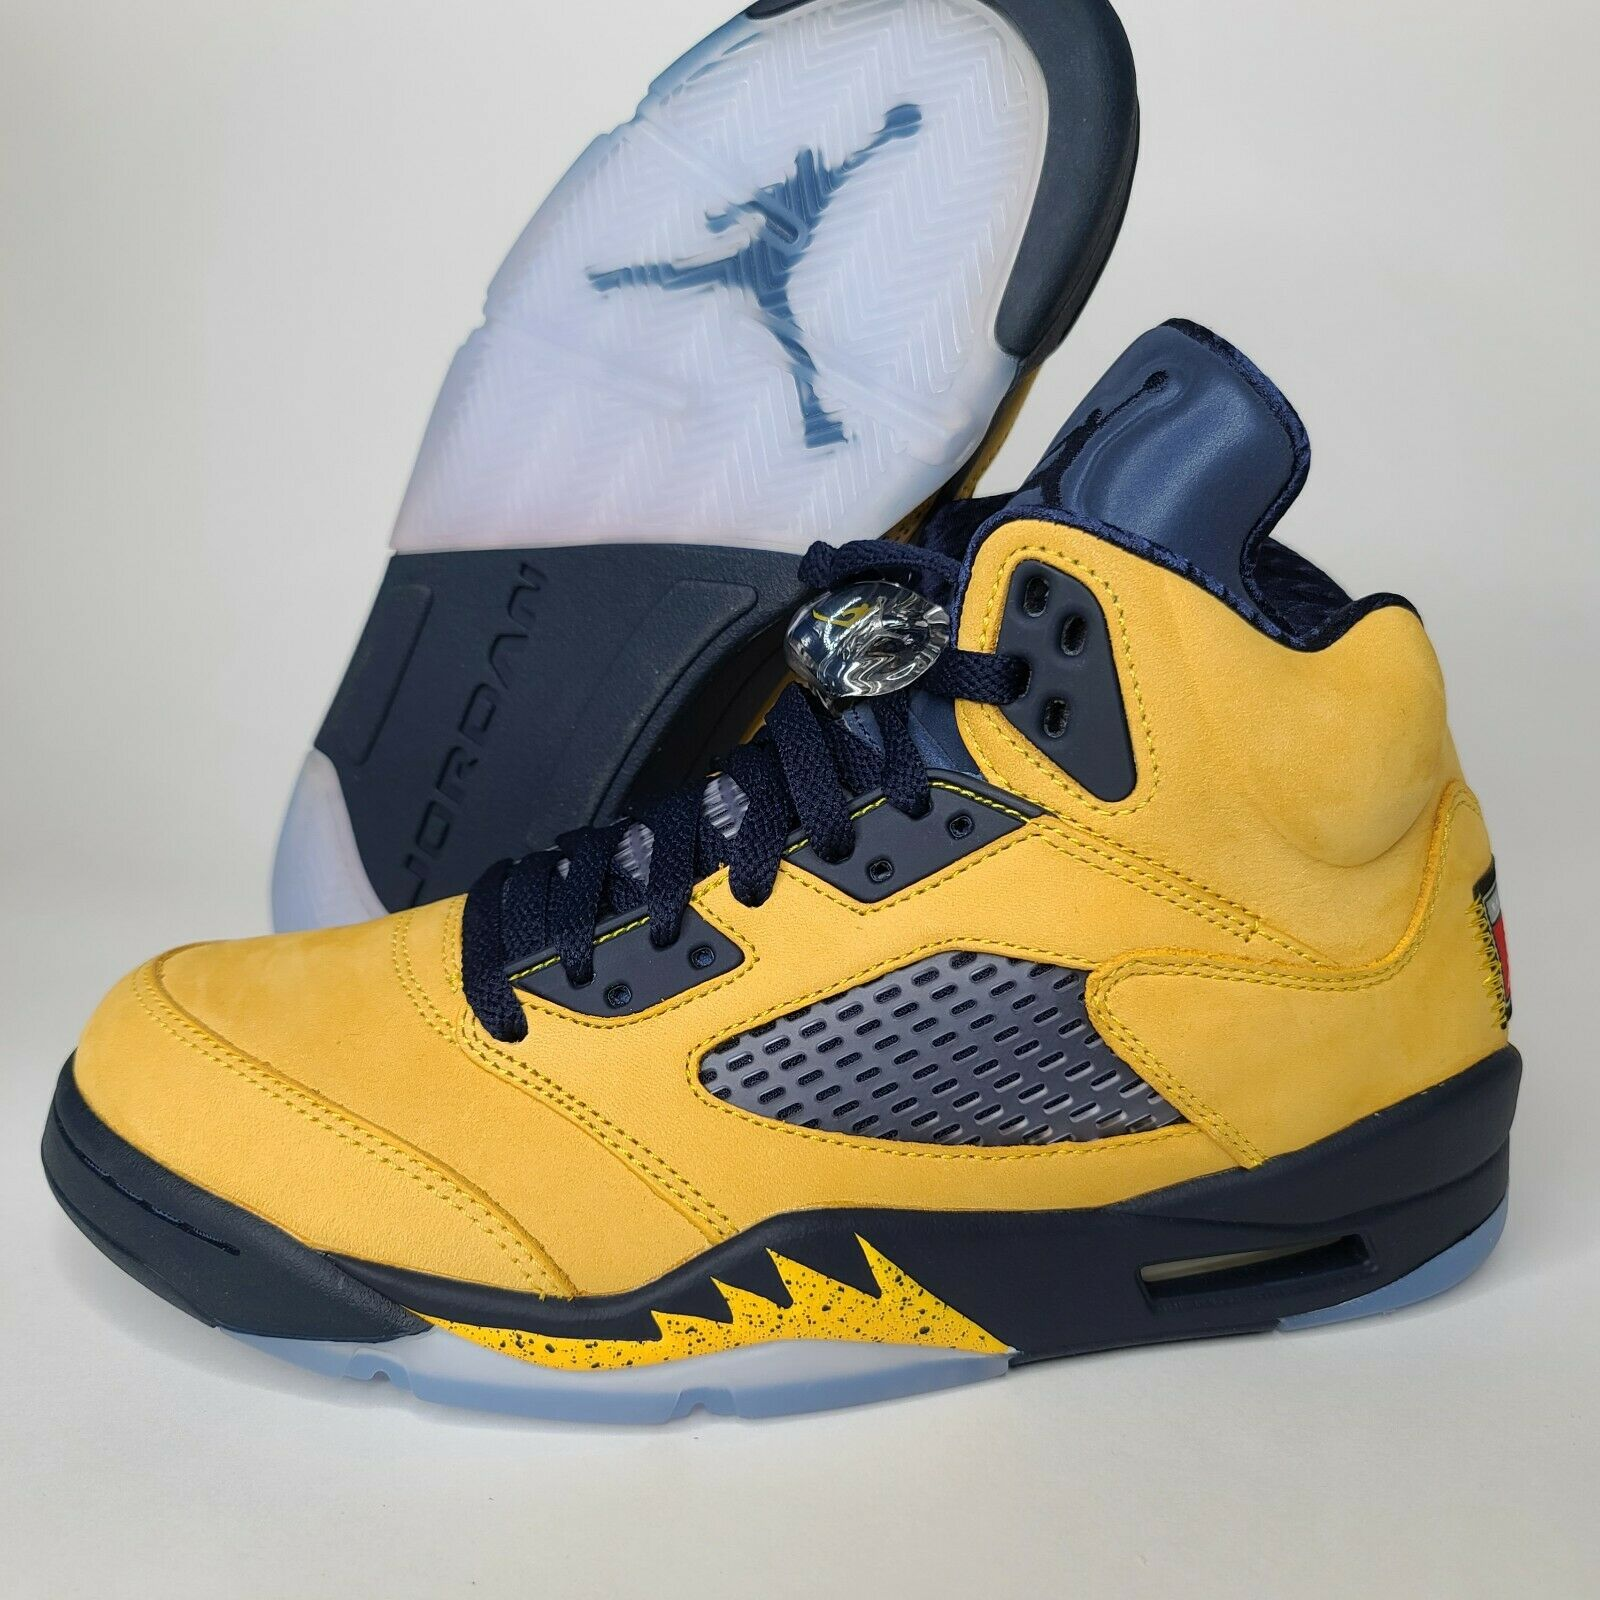 Jordan 5 Retro Michigan 2019